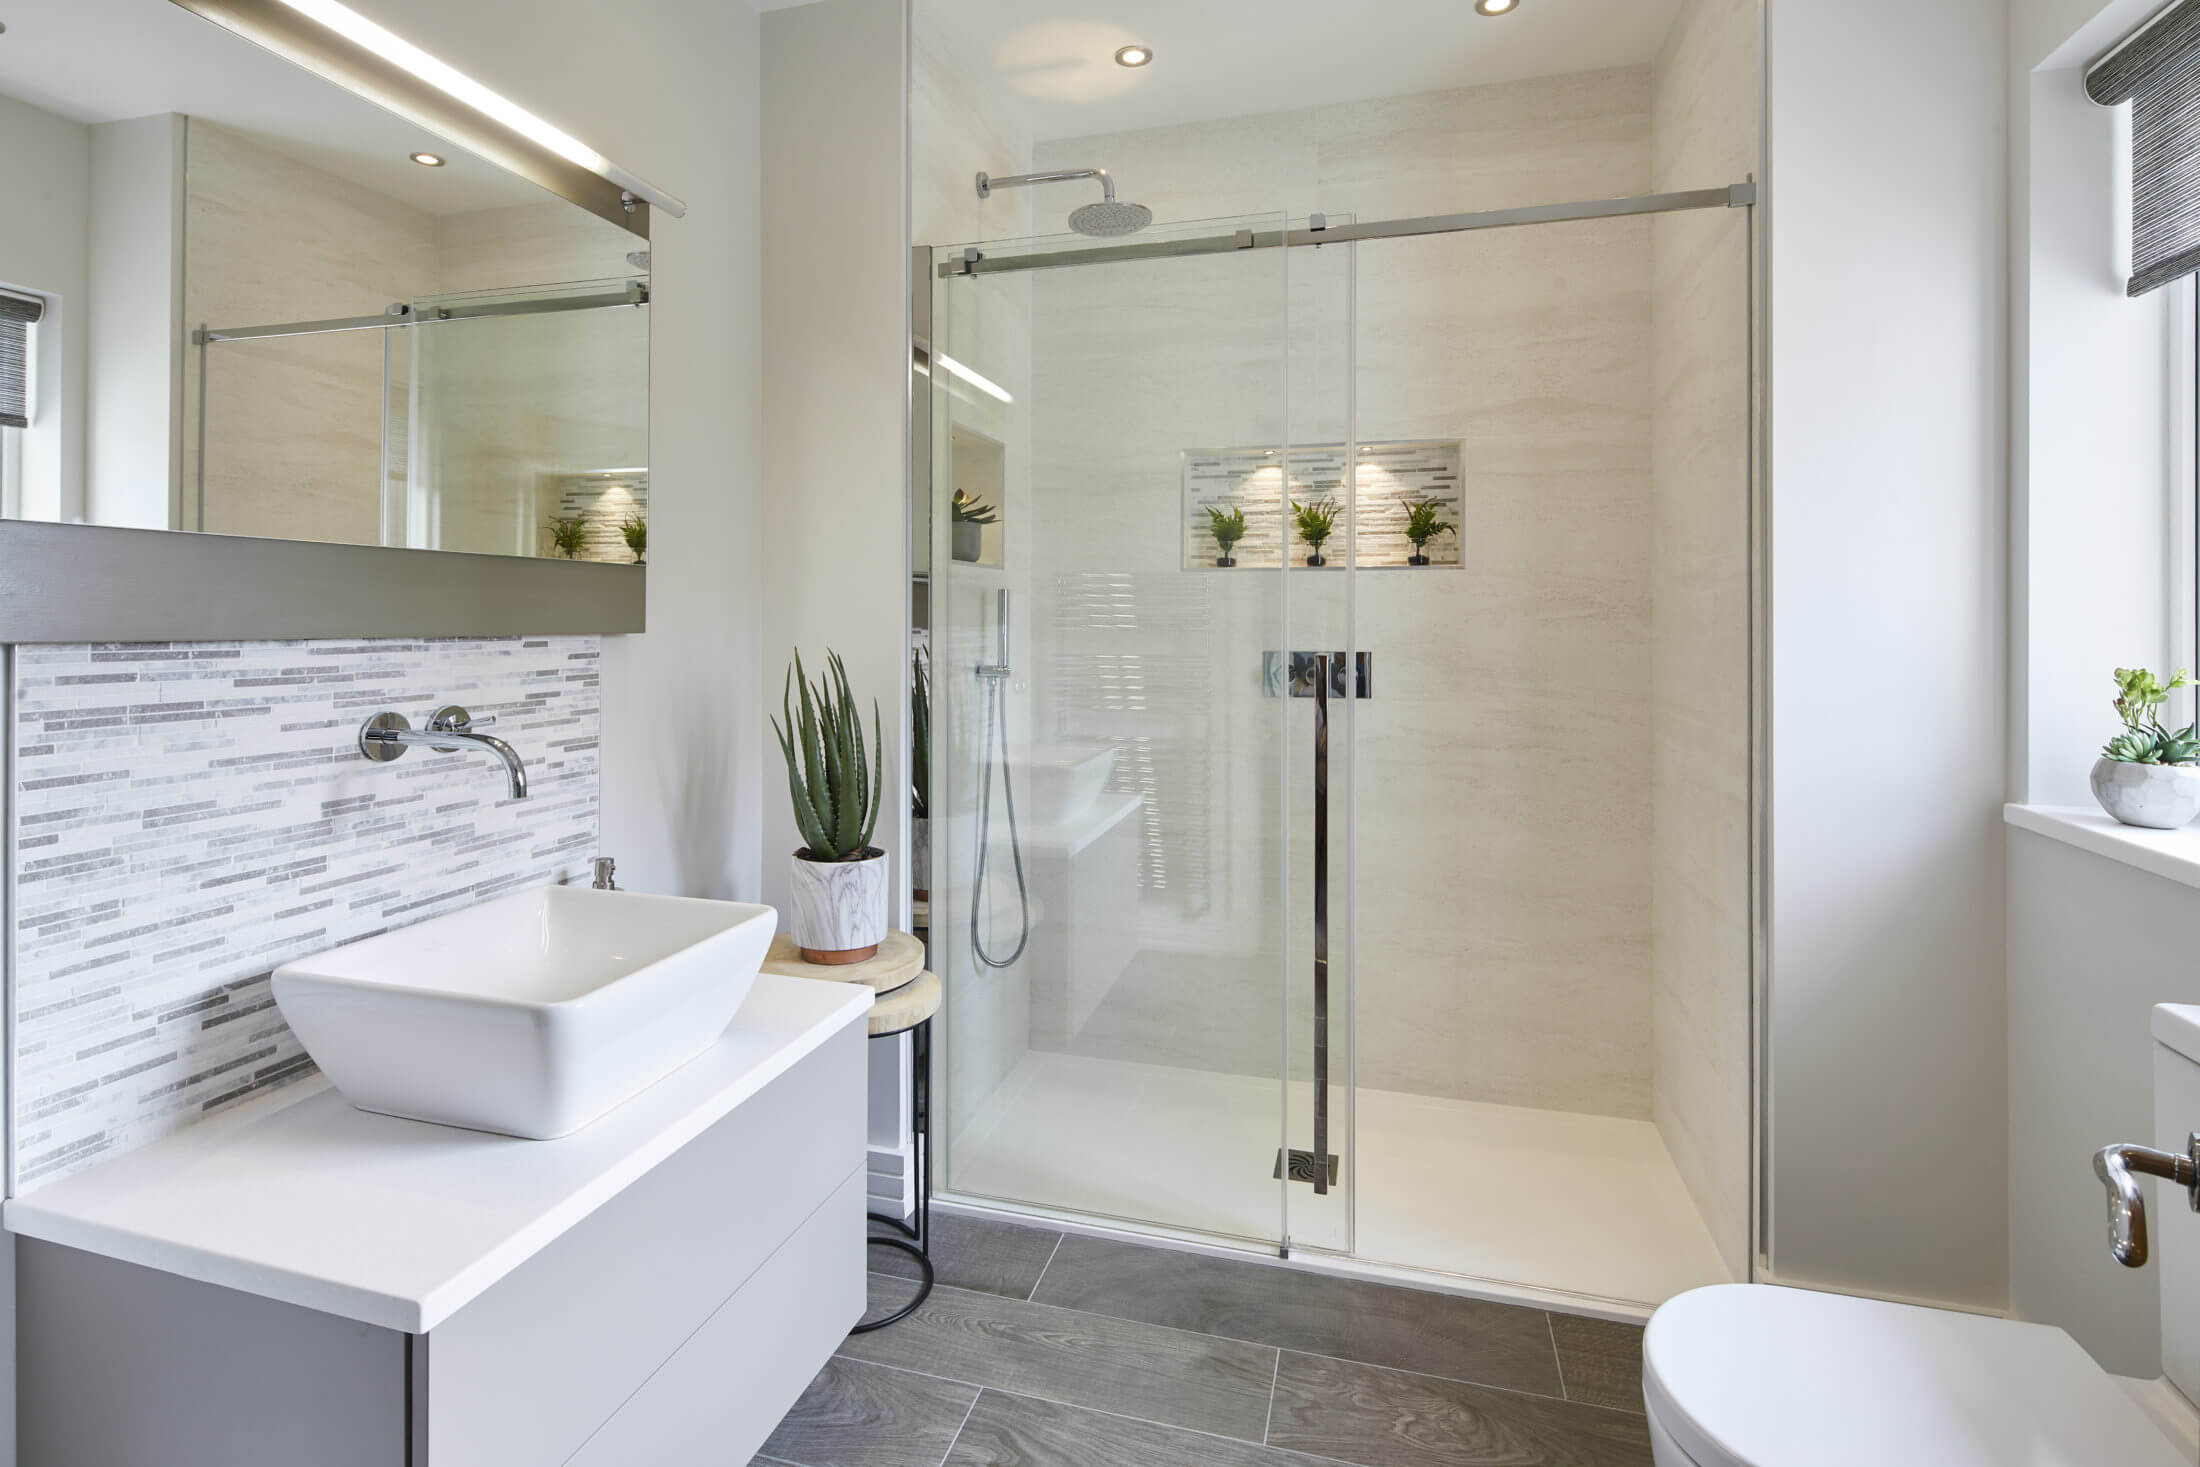 Elegant ensuite shower room